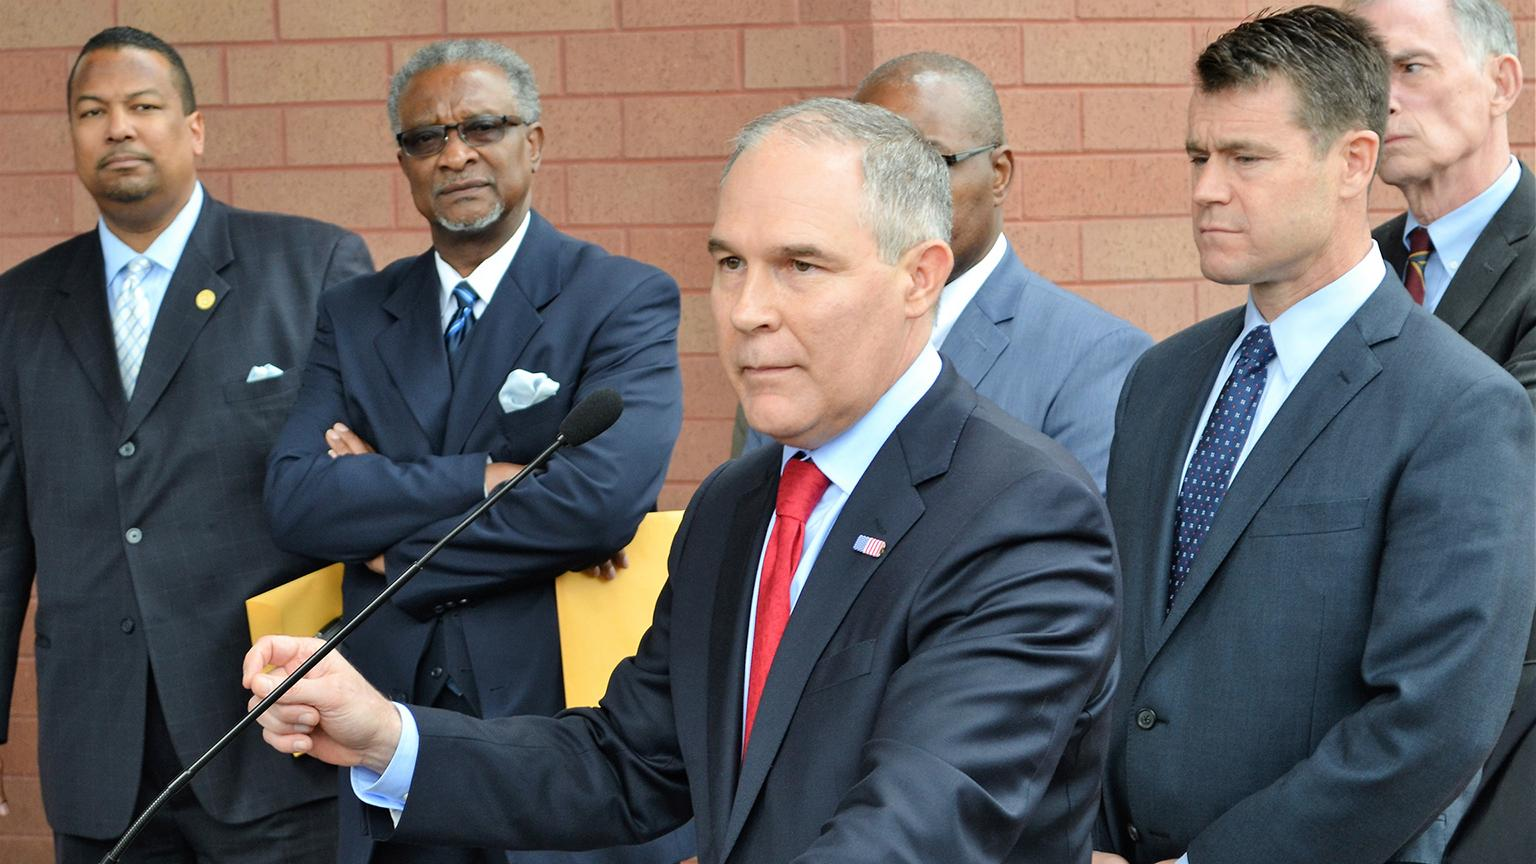 Former EPA Administrator Scott Pruitt speaks to the press after meeting with residents of East Chicago's lead-contaminated neighborhoods in April 2017. (Chicago Tonight file photo)